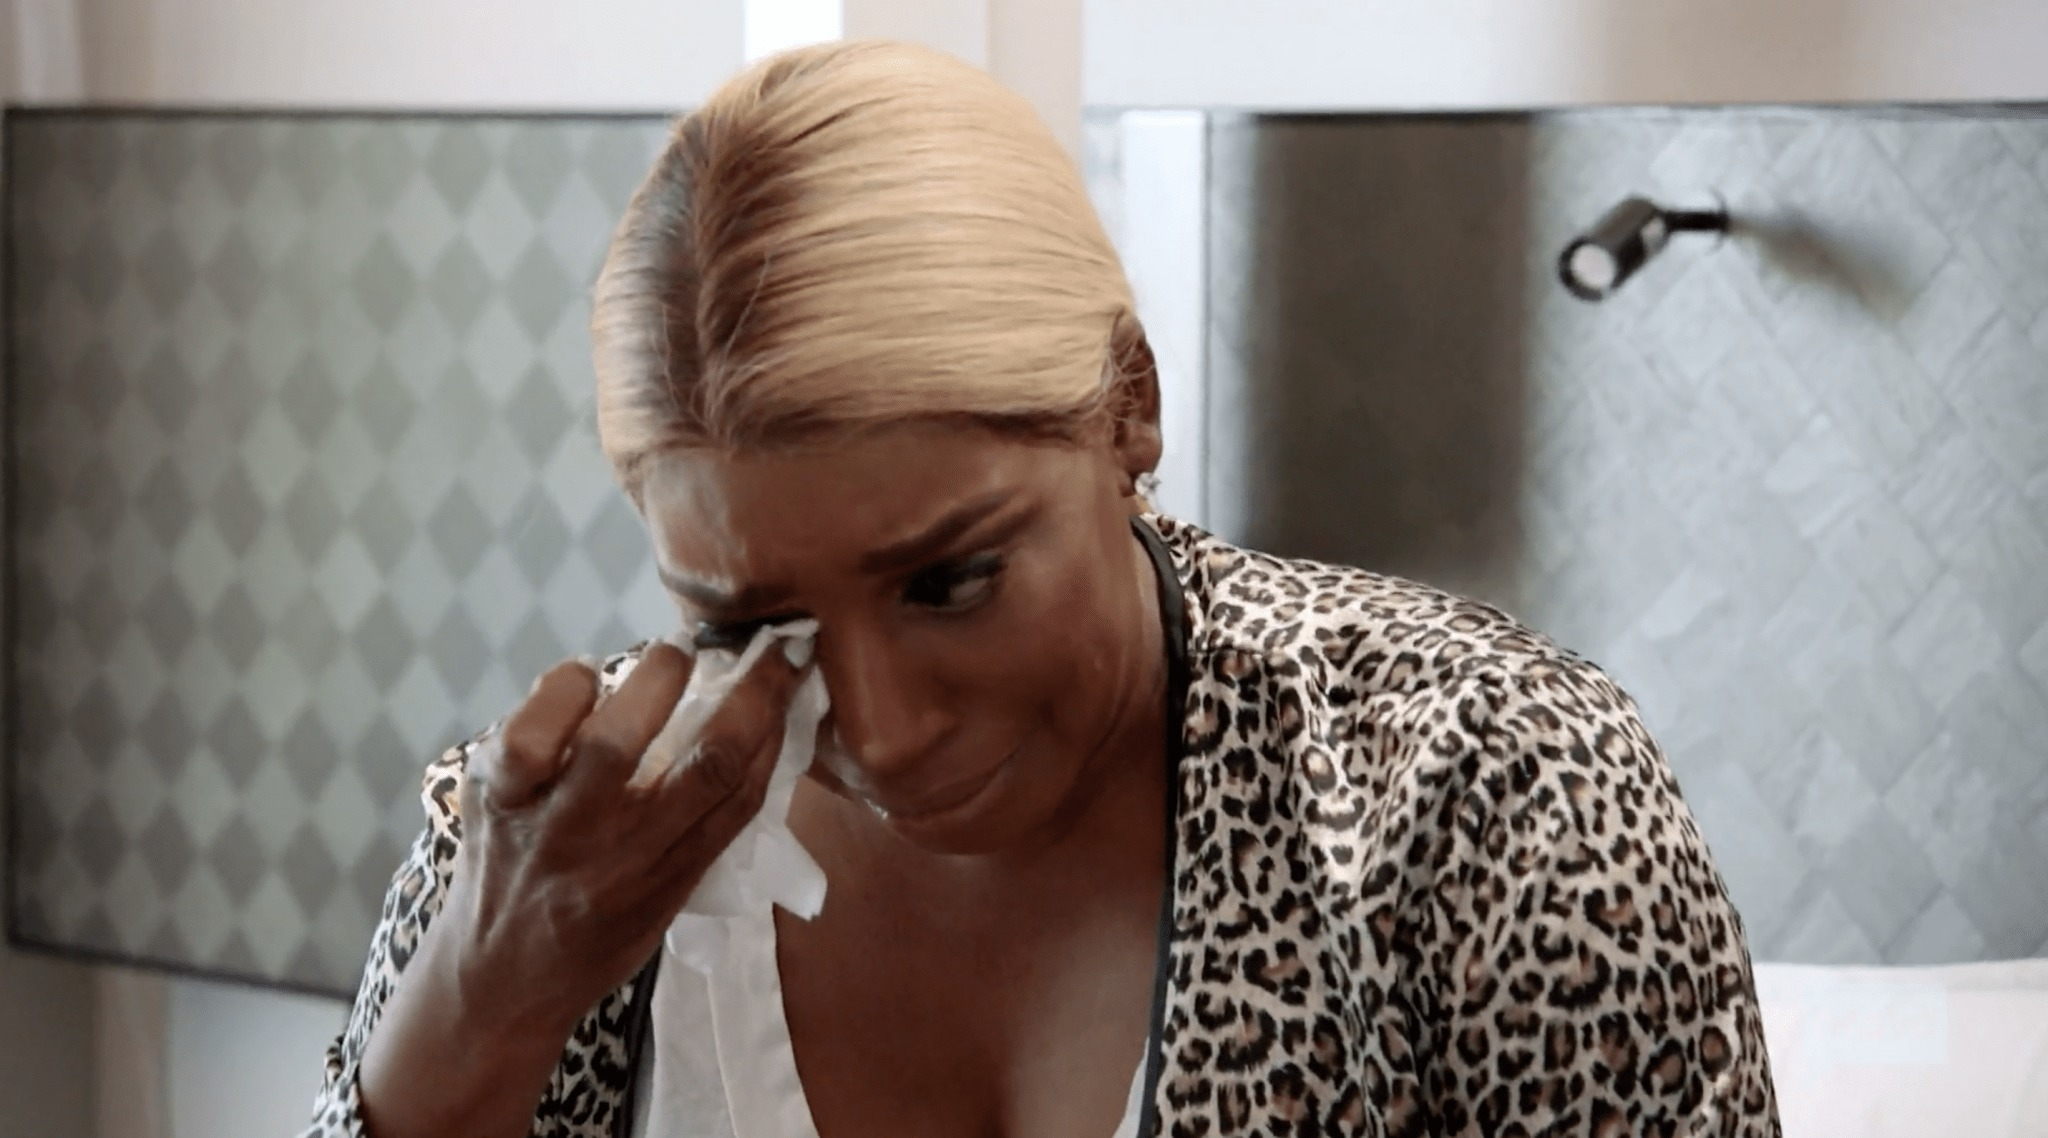 nene-leakes-reveals-bravos-offer-that-made-her-leave-the-rhoa-series-see-the-video